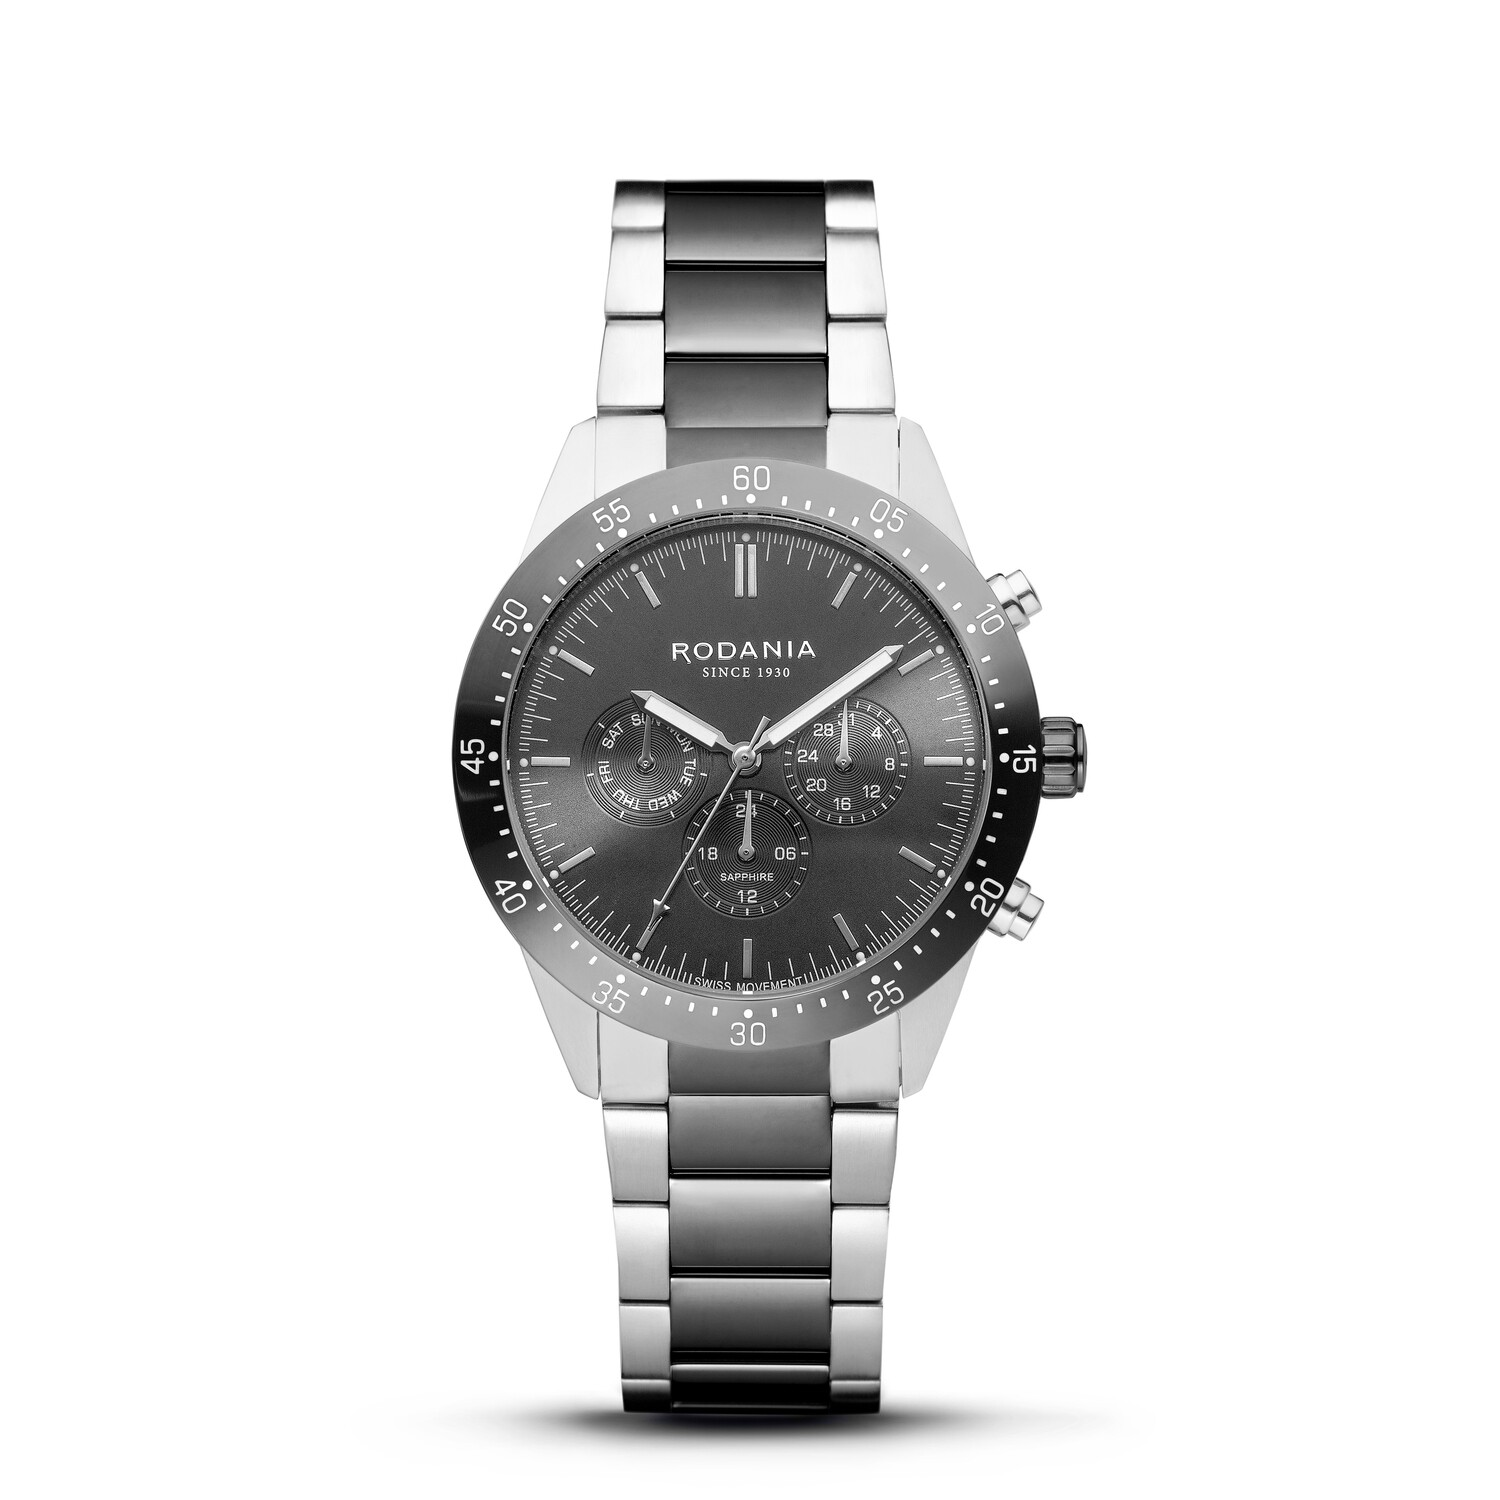 ALPINE: Gun Metal Bezel Silver Case, Grey Dial, Bi-color Silver/Gun Metal bracelet, 43mm